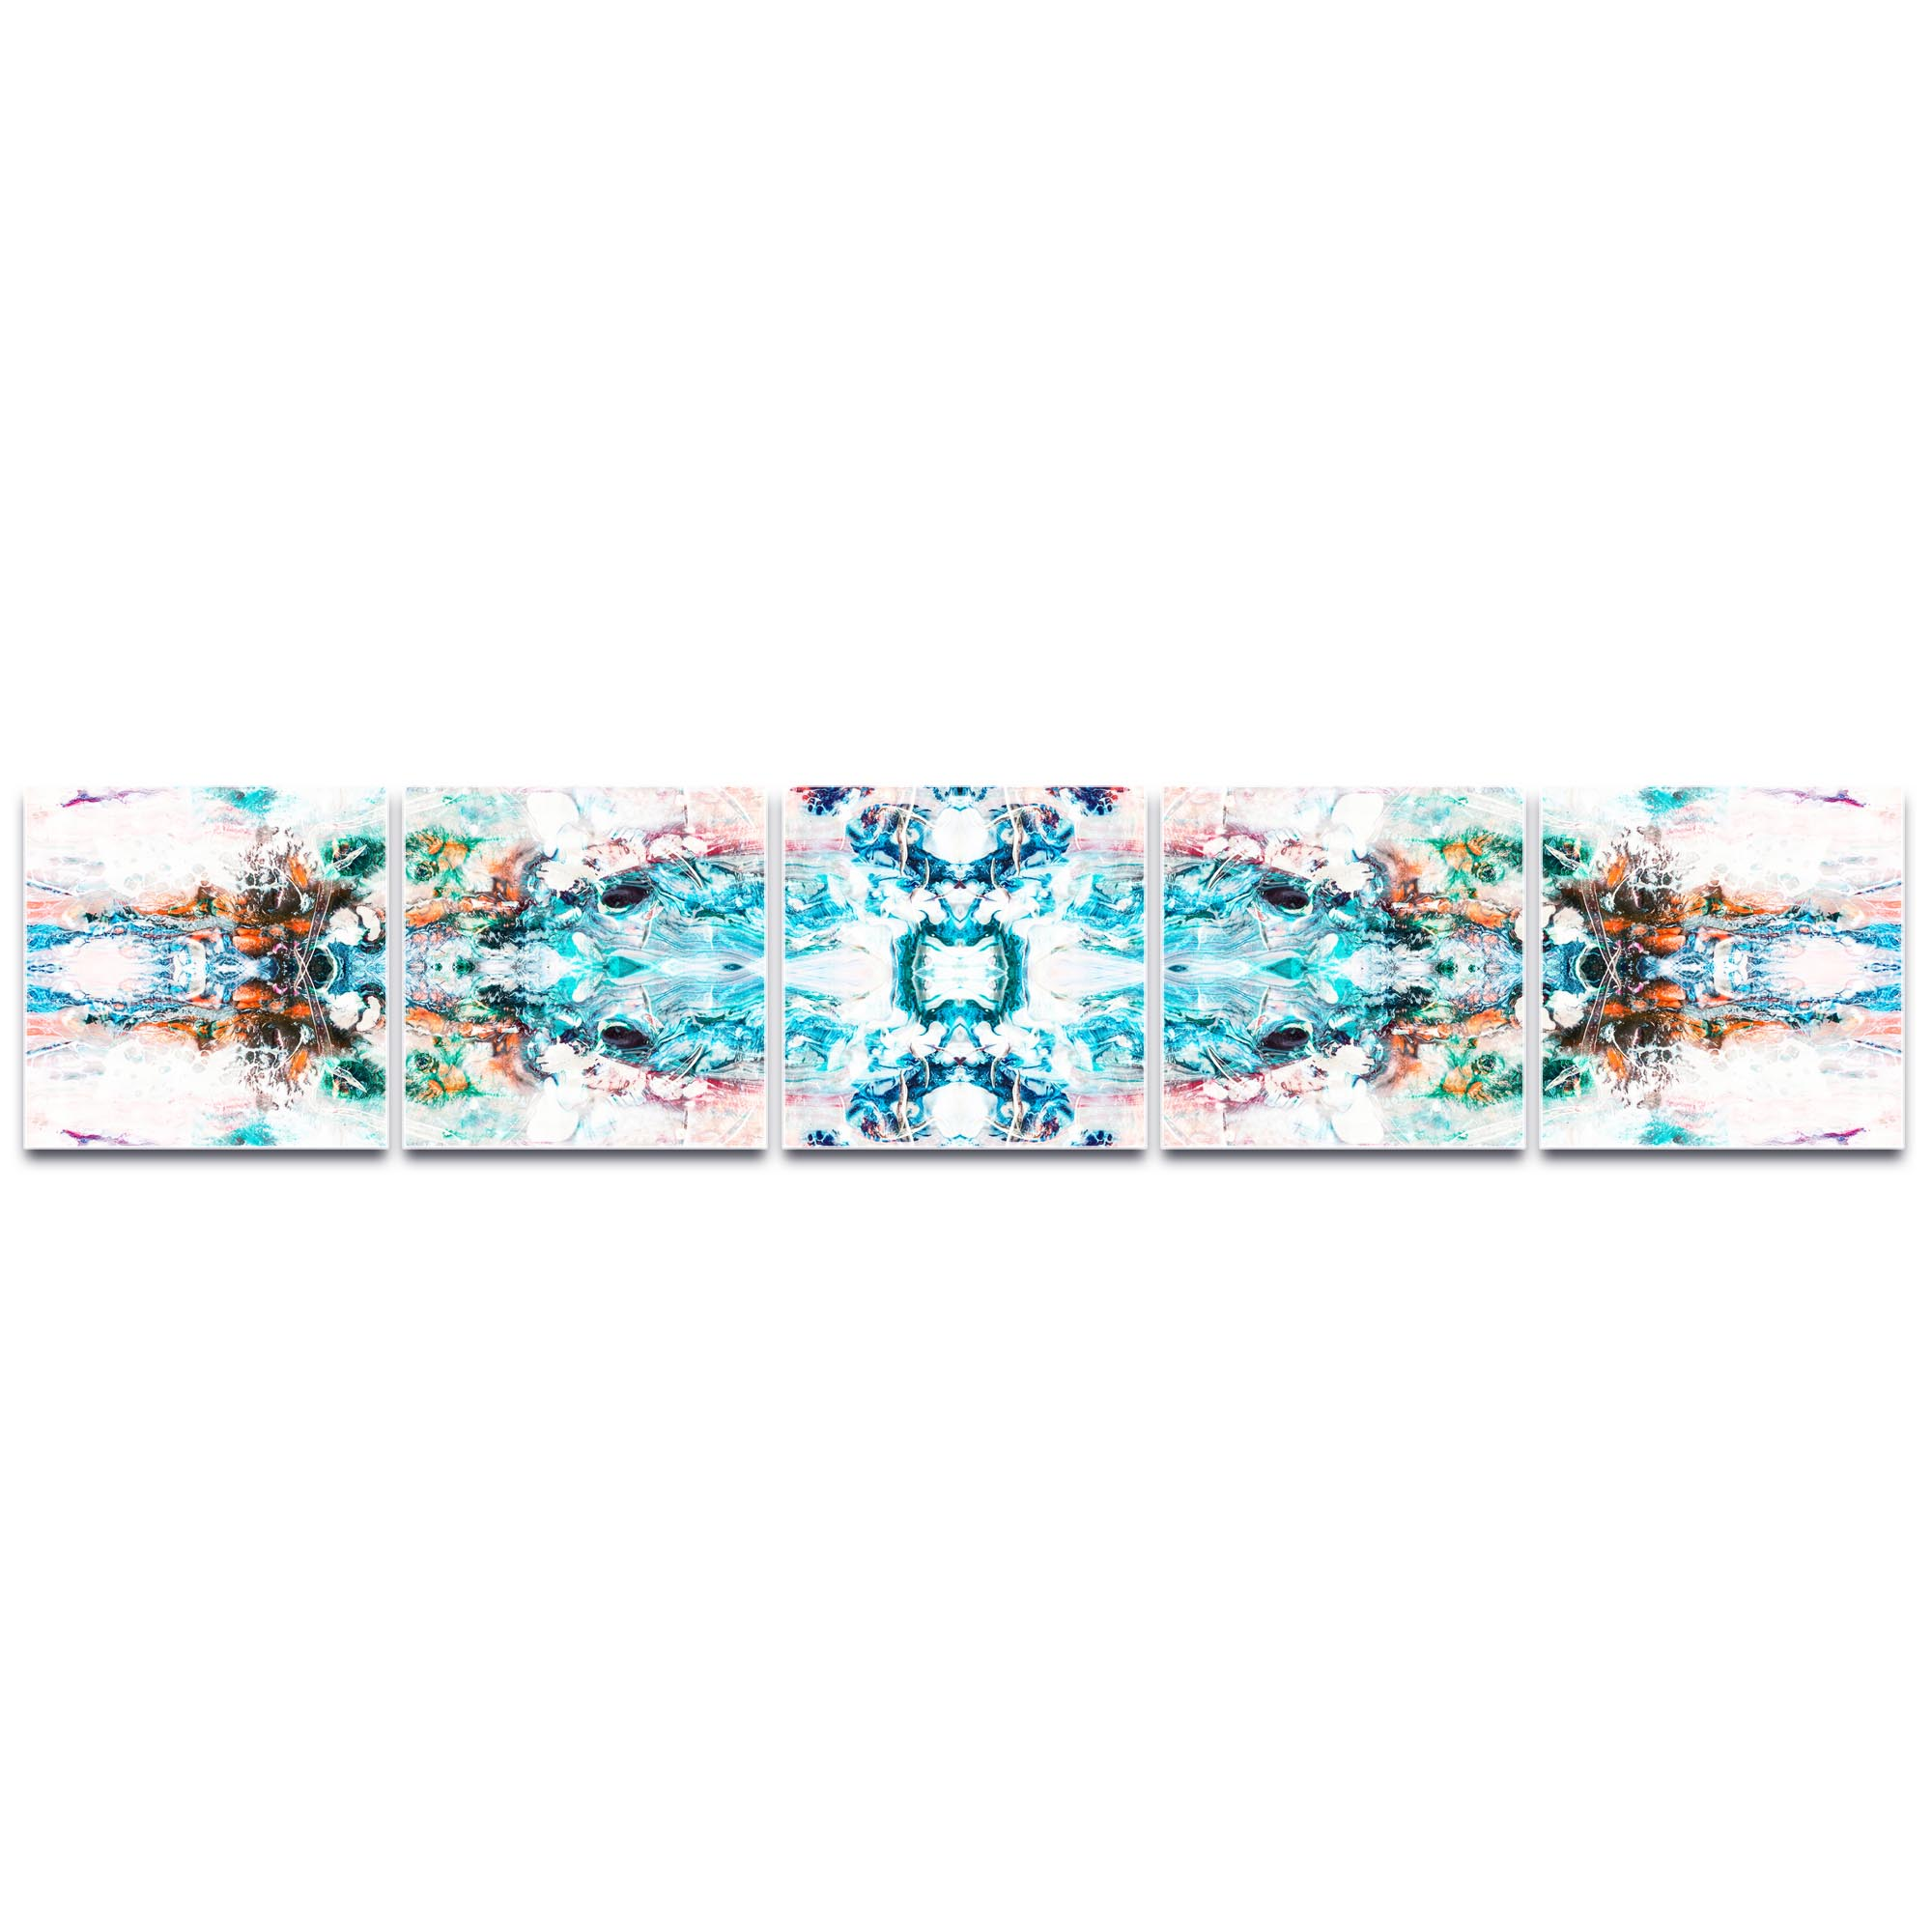 Abstract Wall Art 'Celestial' - Colorful Urban Decor on Metal or Plexiglass - Image 2